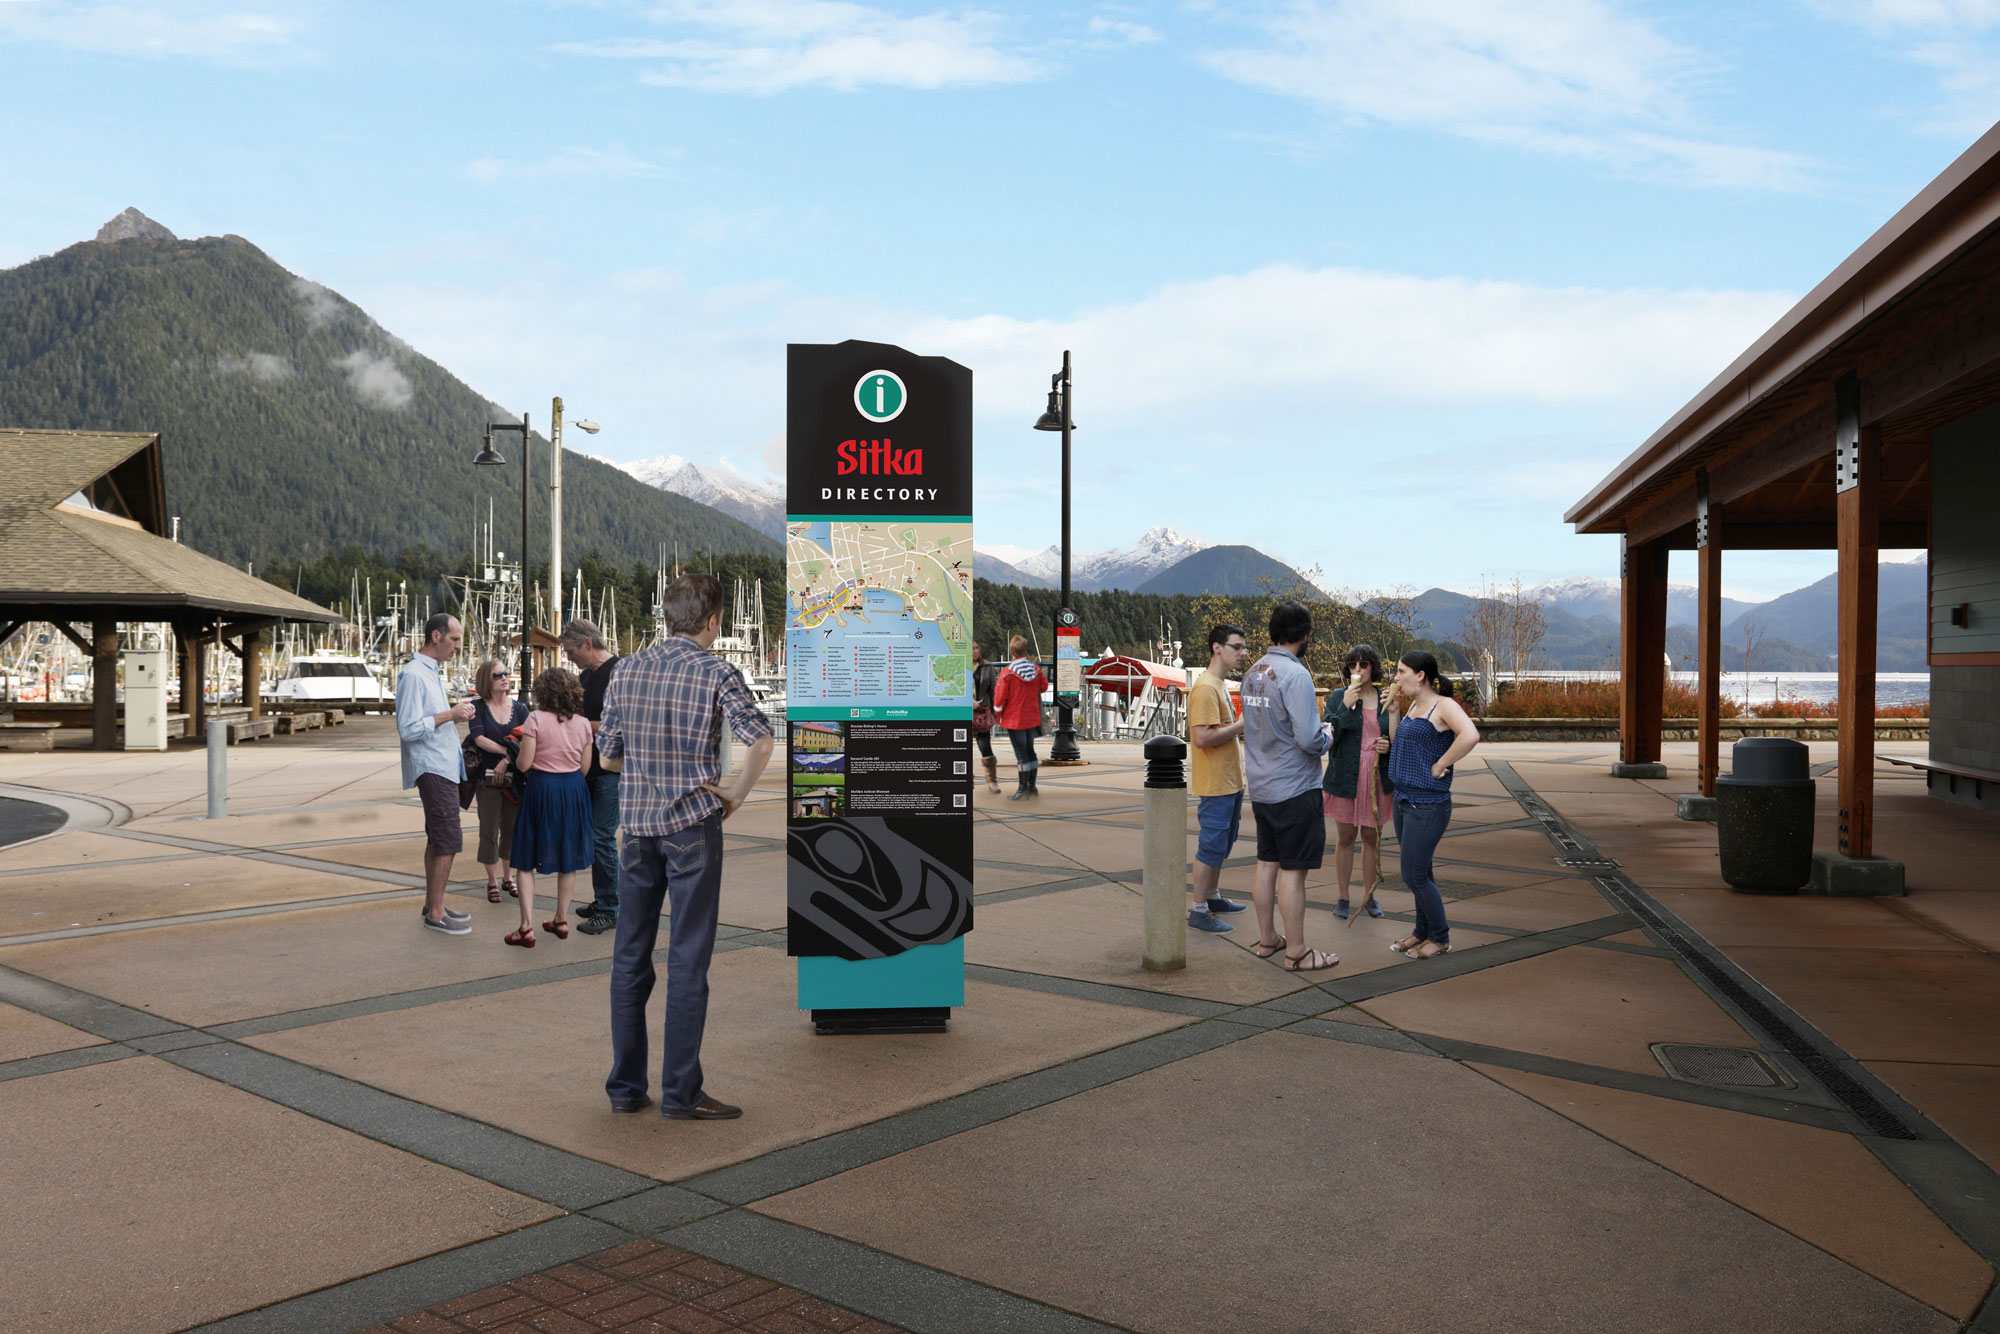 For the town of Sitka in Alaska powder coated graphics formed the complete façade of the map and interpretive kiosk design by Axia.